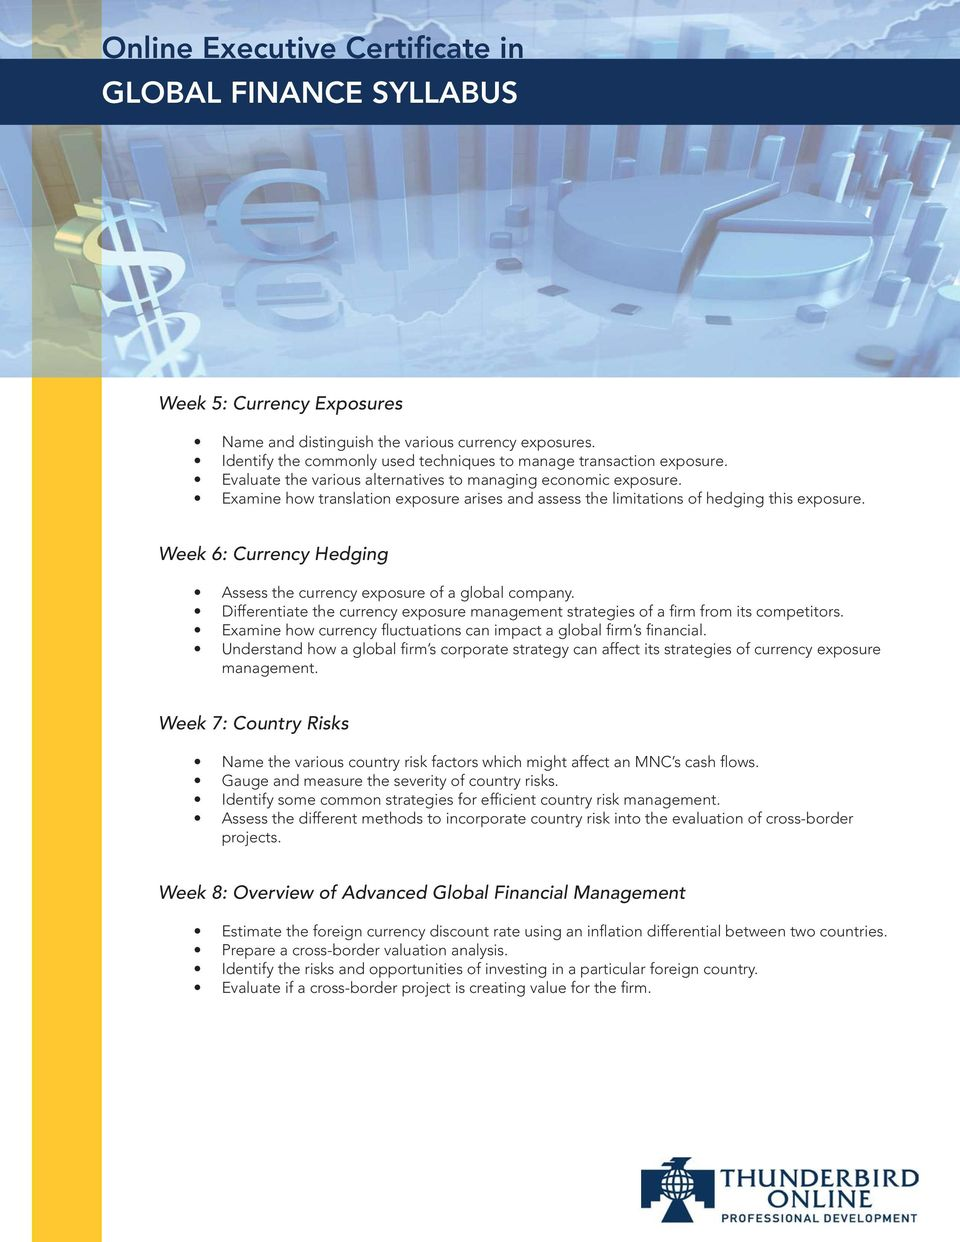 Week 6: Currency Hedging Assess the currency exposure of a global company. Differentiate the currency exposure management strategies of a firm from its competitors.